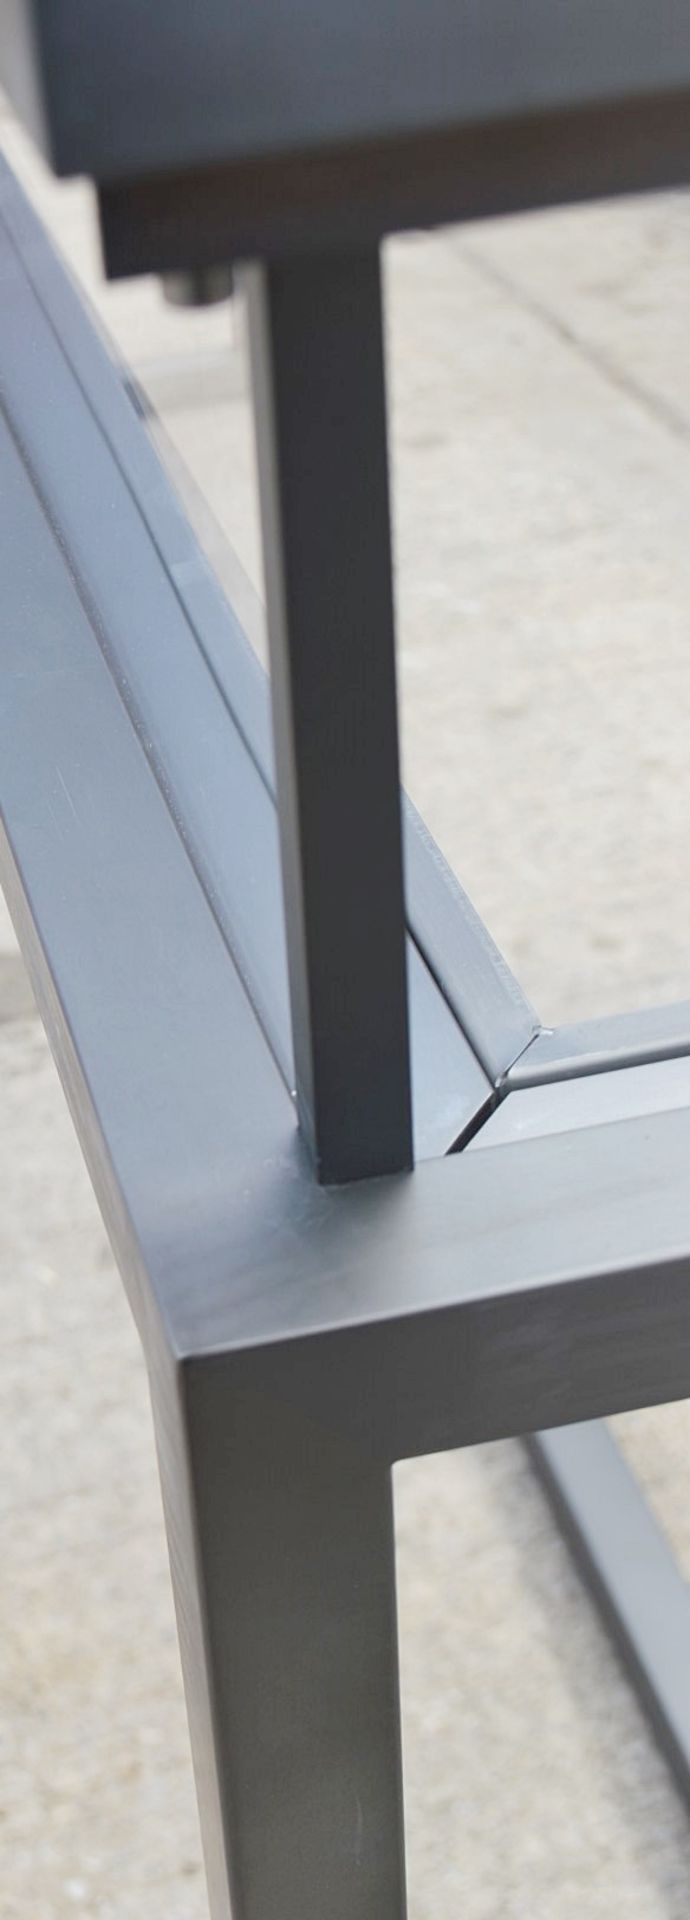 1 x EICHHOLTZ Luxury Console Table Harvey With A Sliding Glass Top And Steel Frame - RRP £3,839 - Image 14 of 16